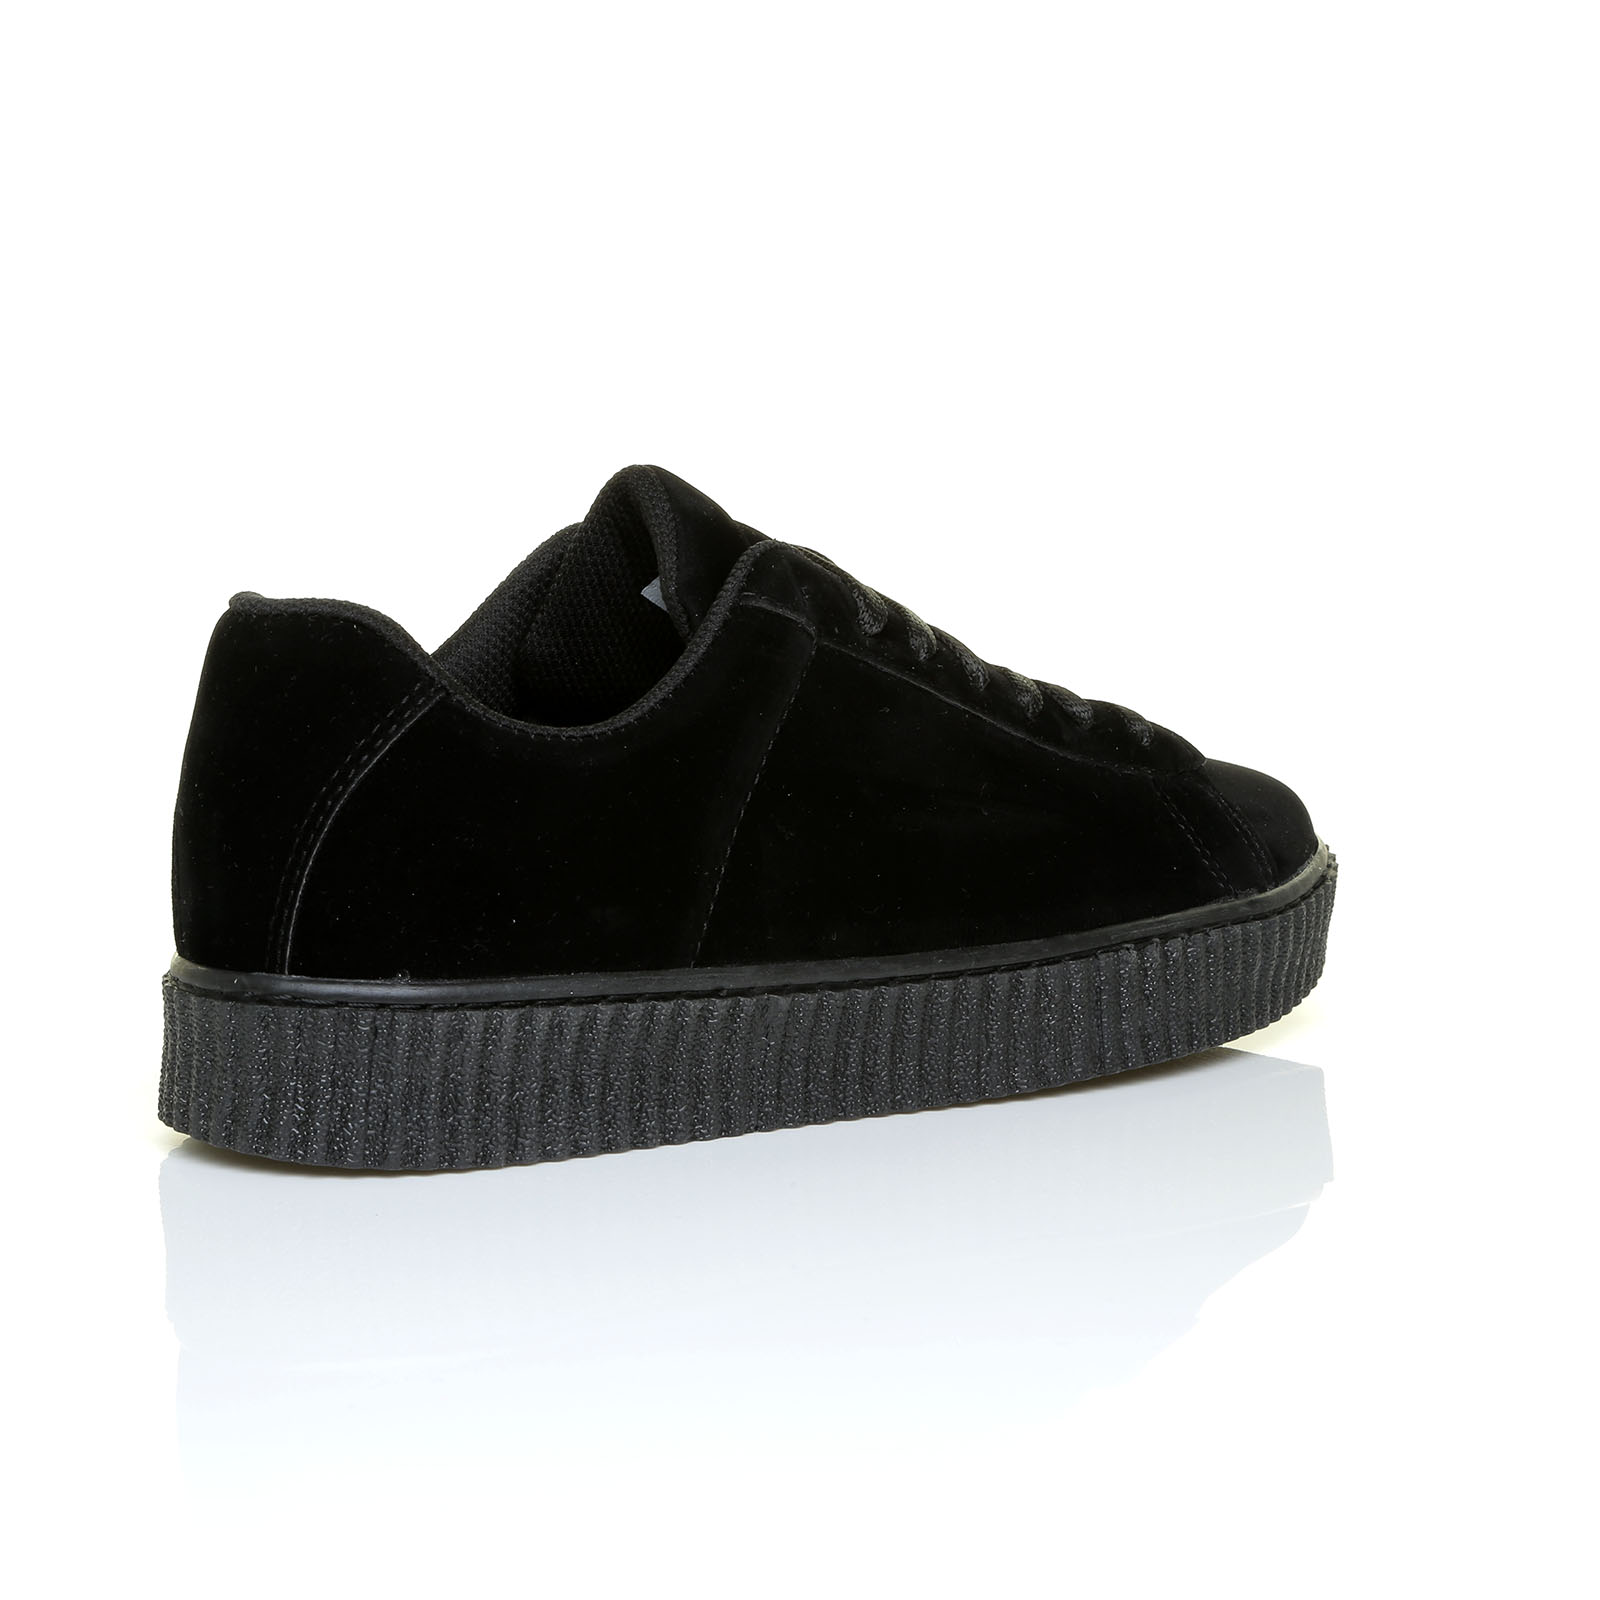 Ladies Black Leather Trainer Shoes